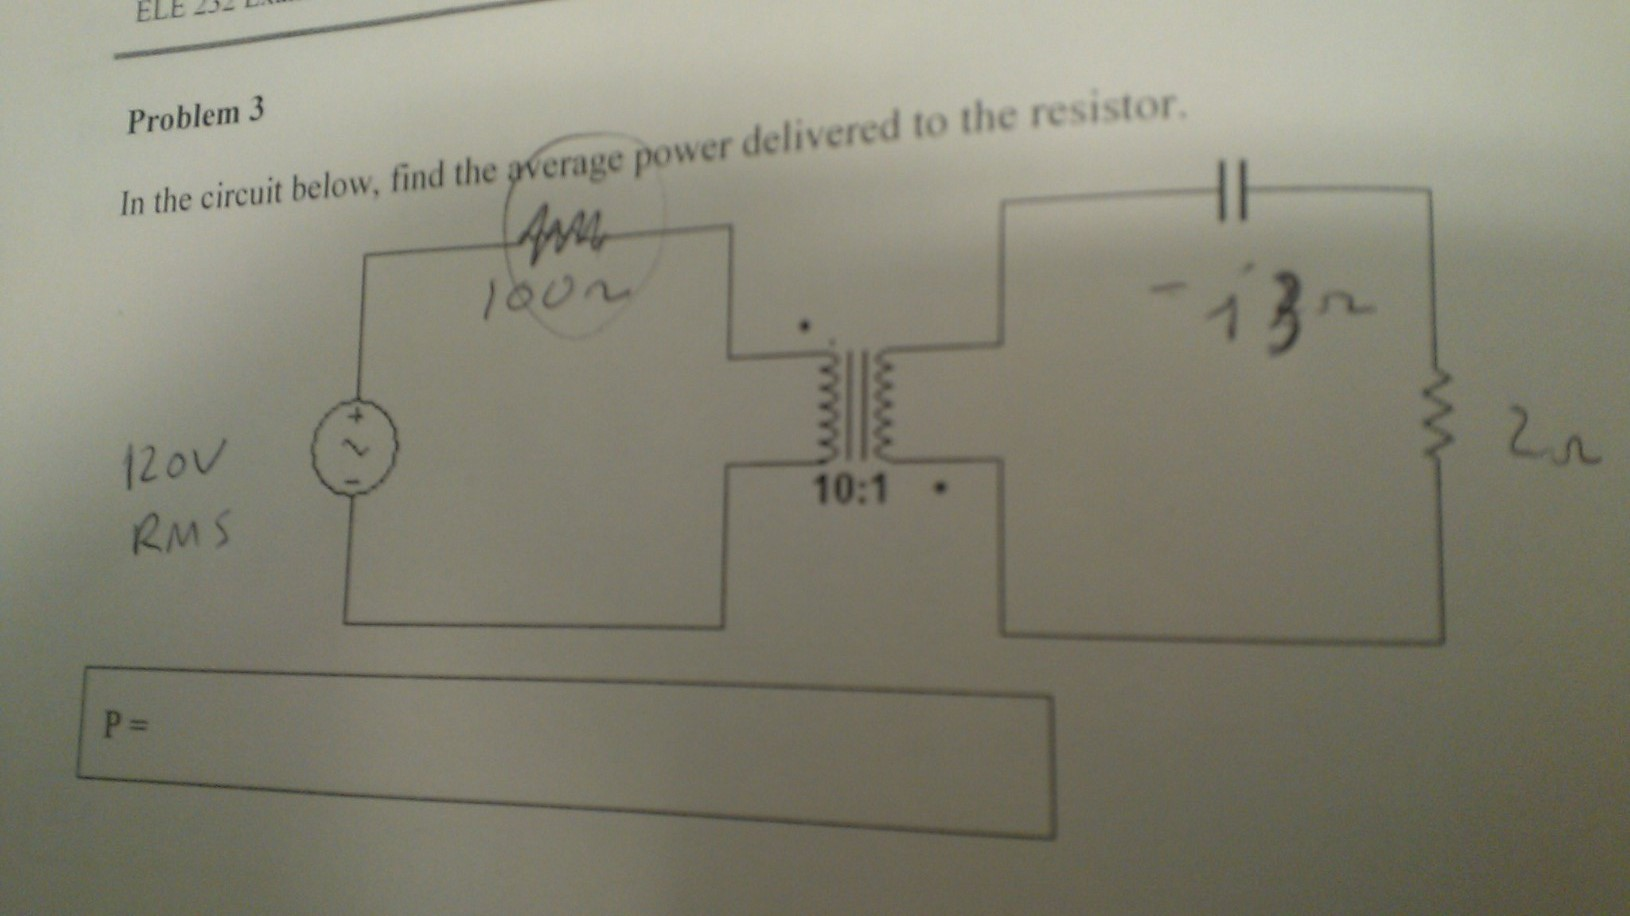 In the circuit below. find the average power deliv